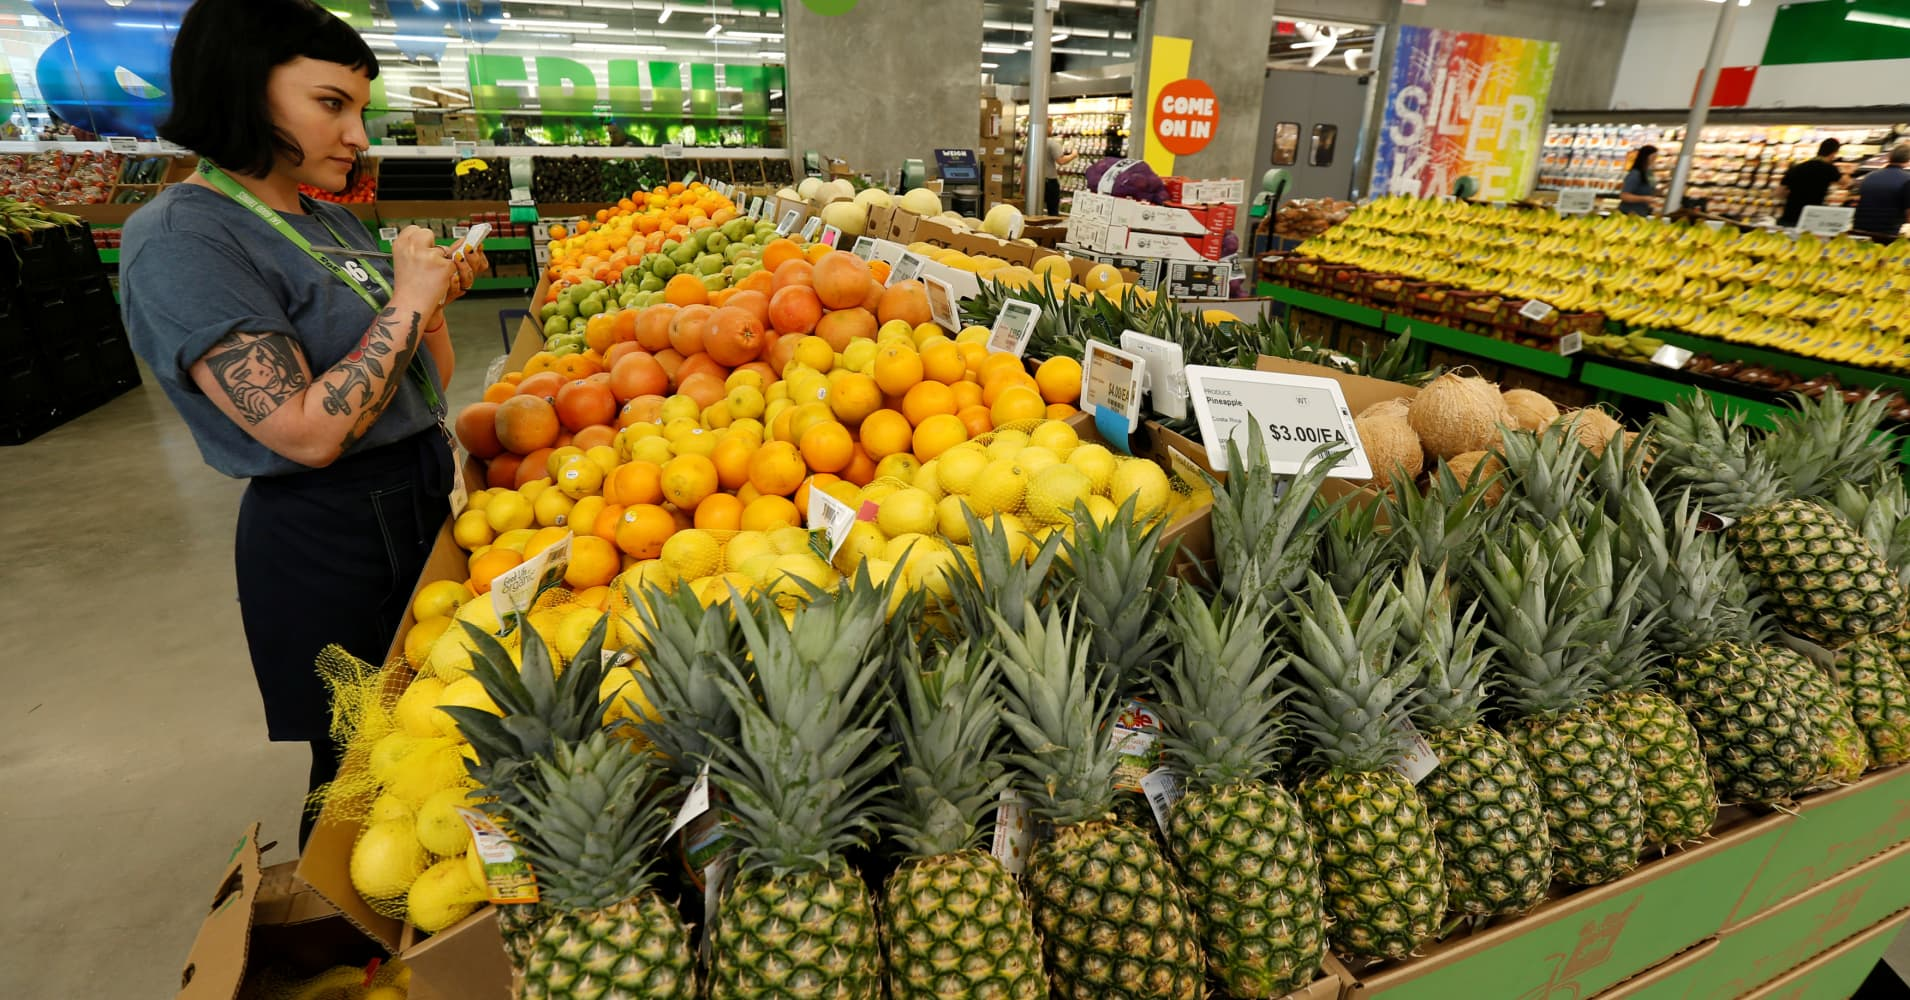 Ananas Credit the best cash back credit card for grocery shopping